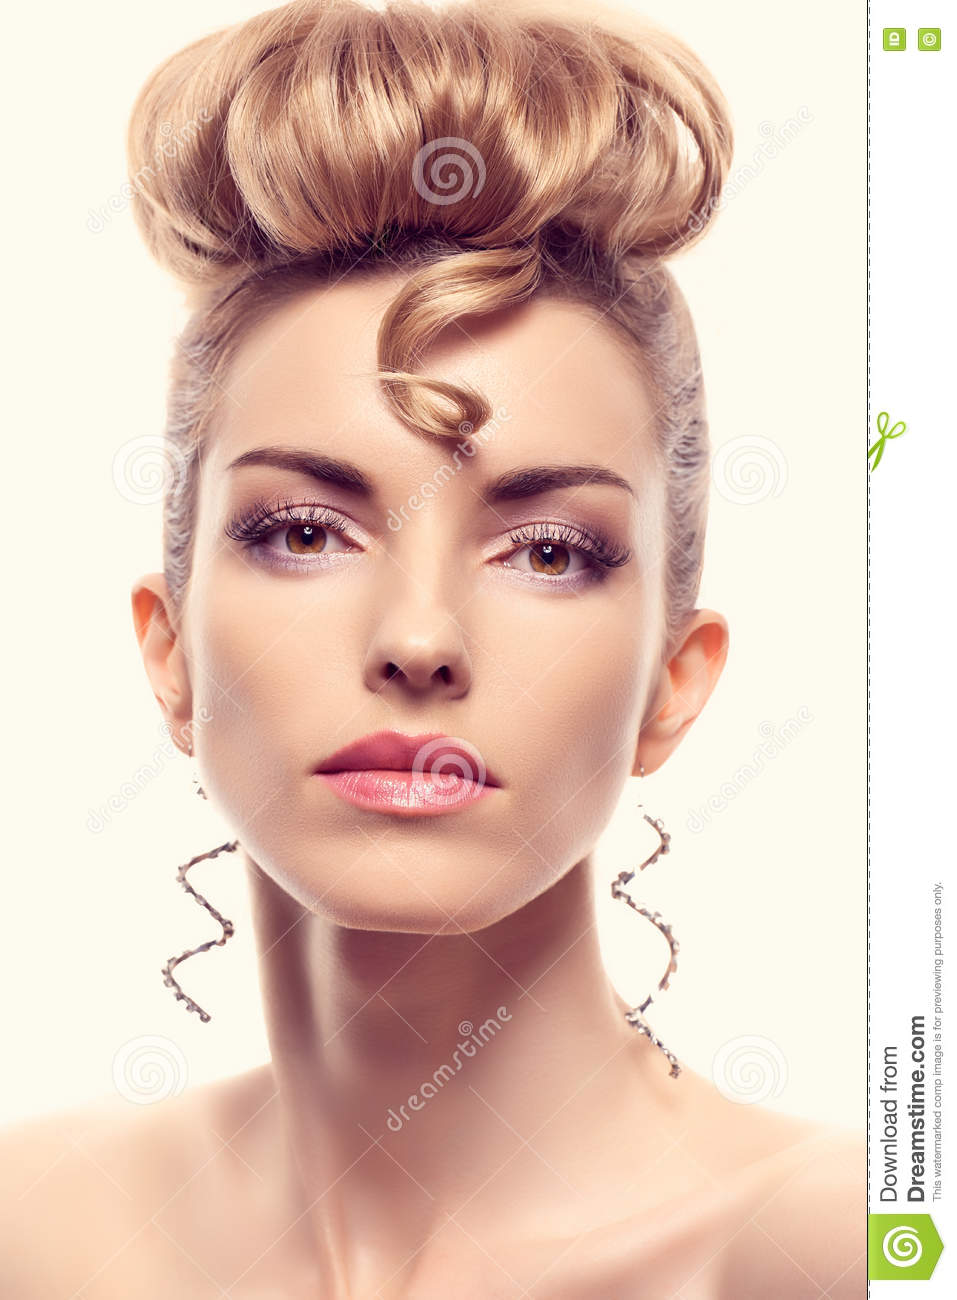 Fashion Natural Makeupwoman With Mohawk Hairstyle Stock Image